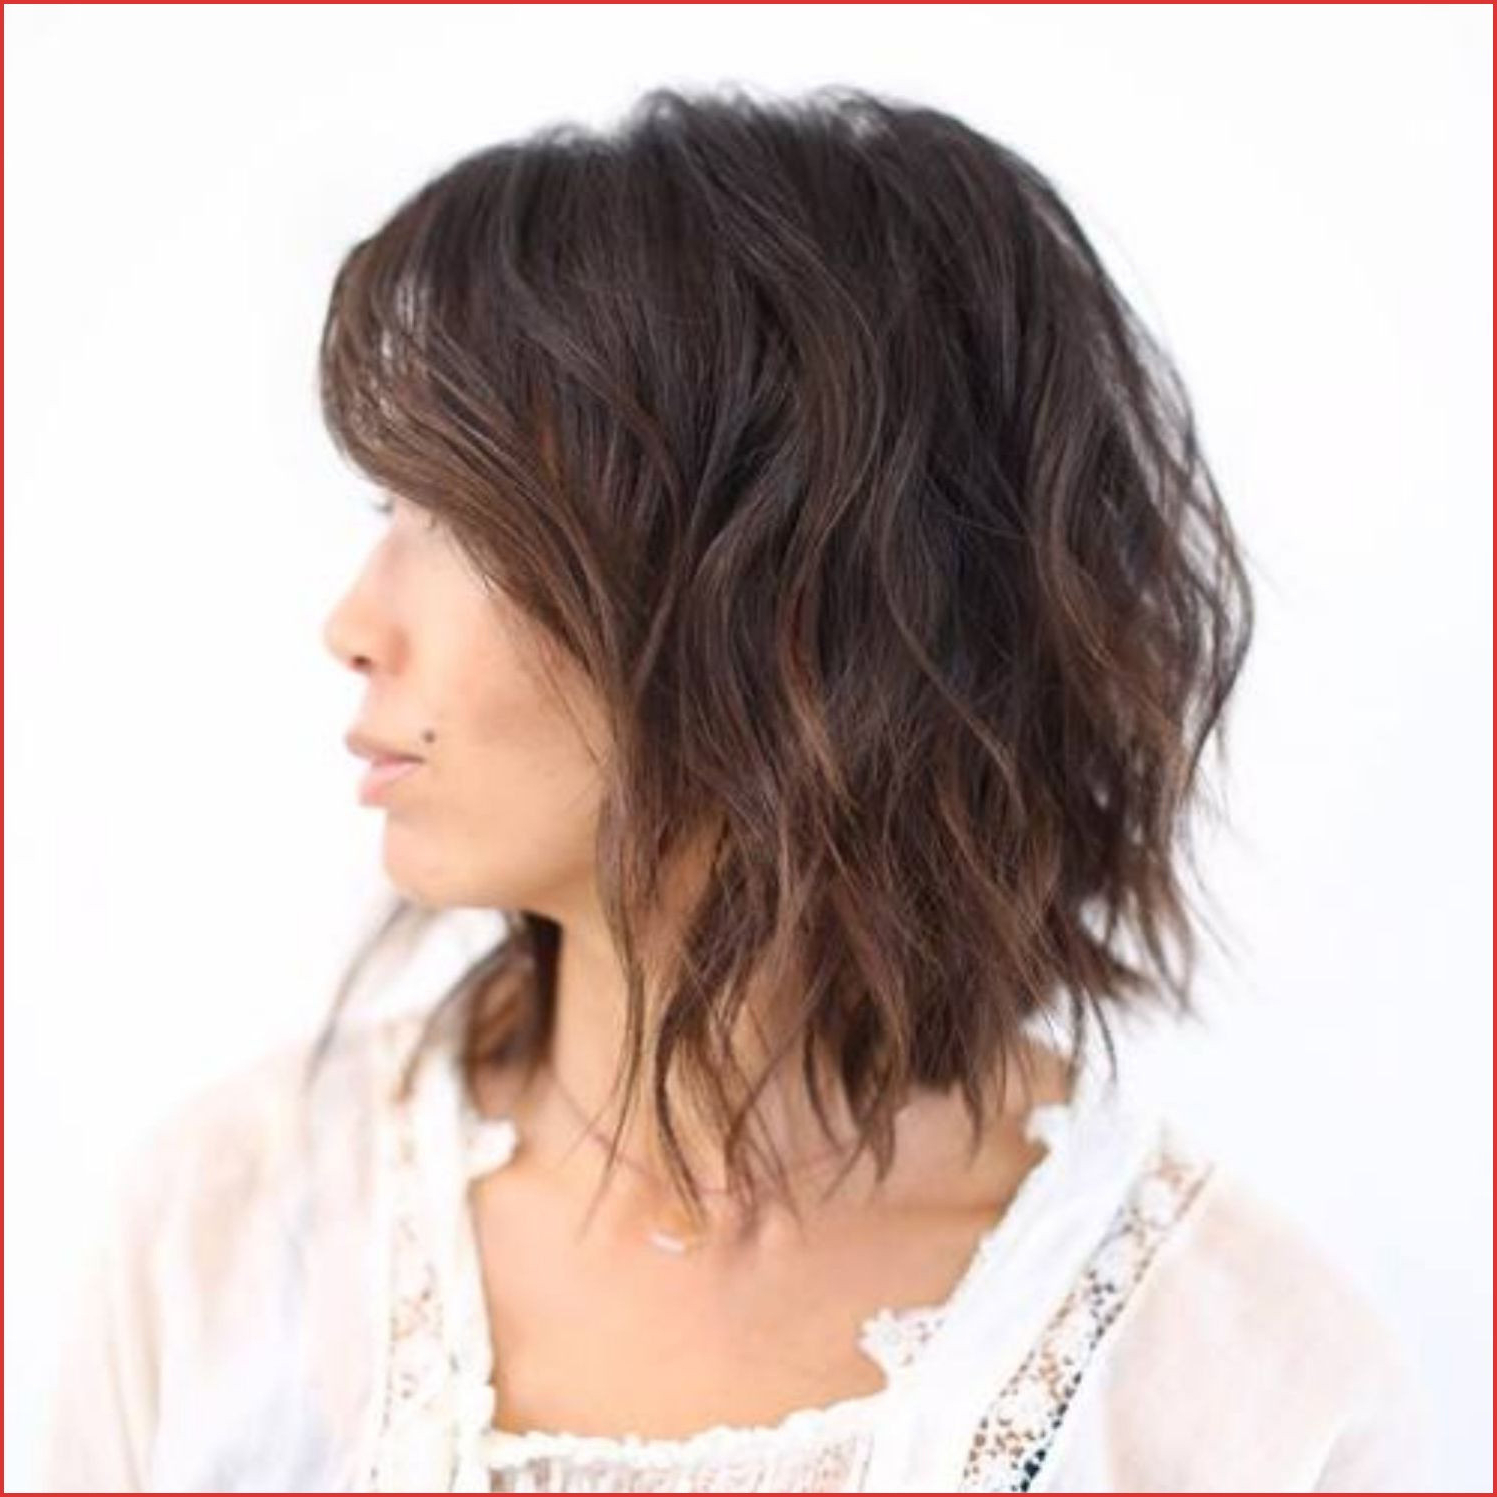 Medium Length Haircuts For Thick Hair With Side Bangs Pin Within Recent Mid Length Choppy Haircuts For Thick Hair (View 16 of 20)